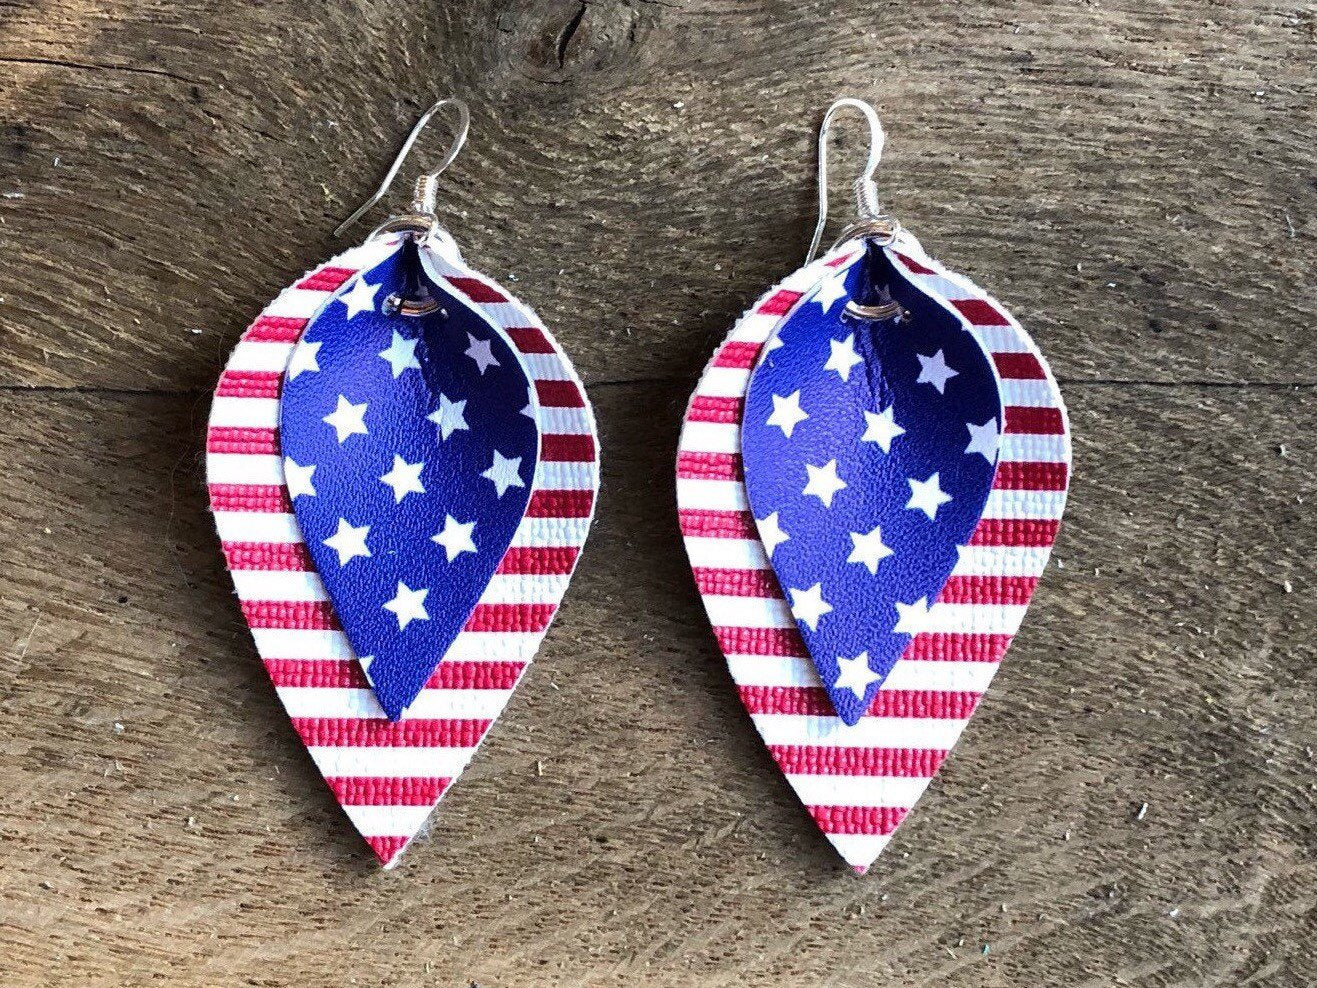 americana-katie-double-layered-vegan-leather-leaf-shaped-earrings